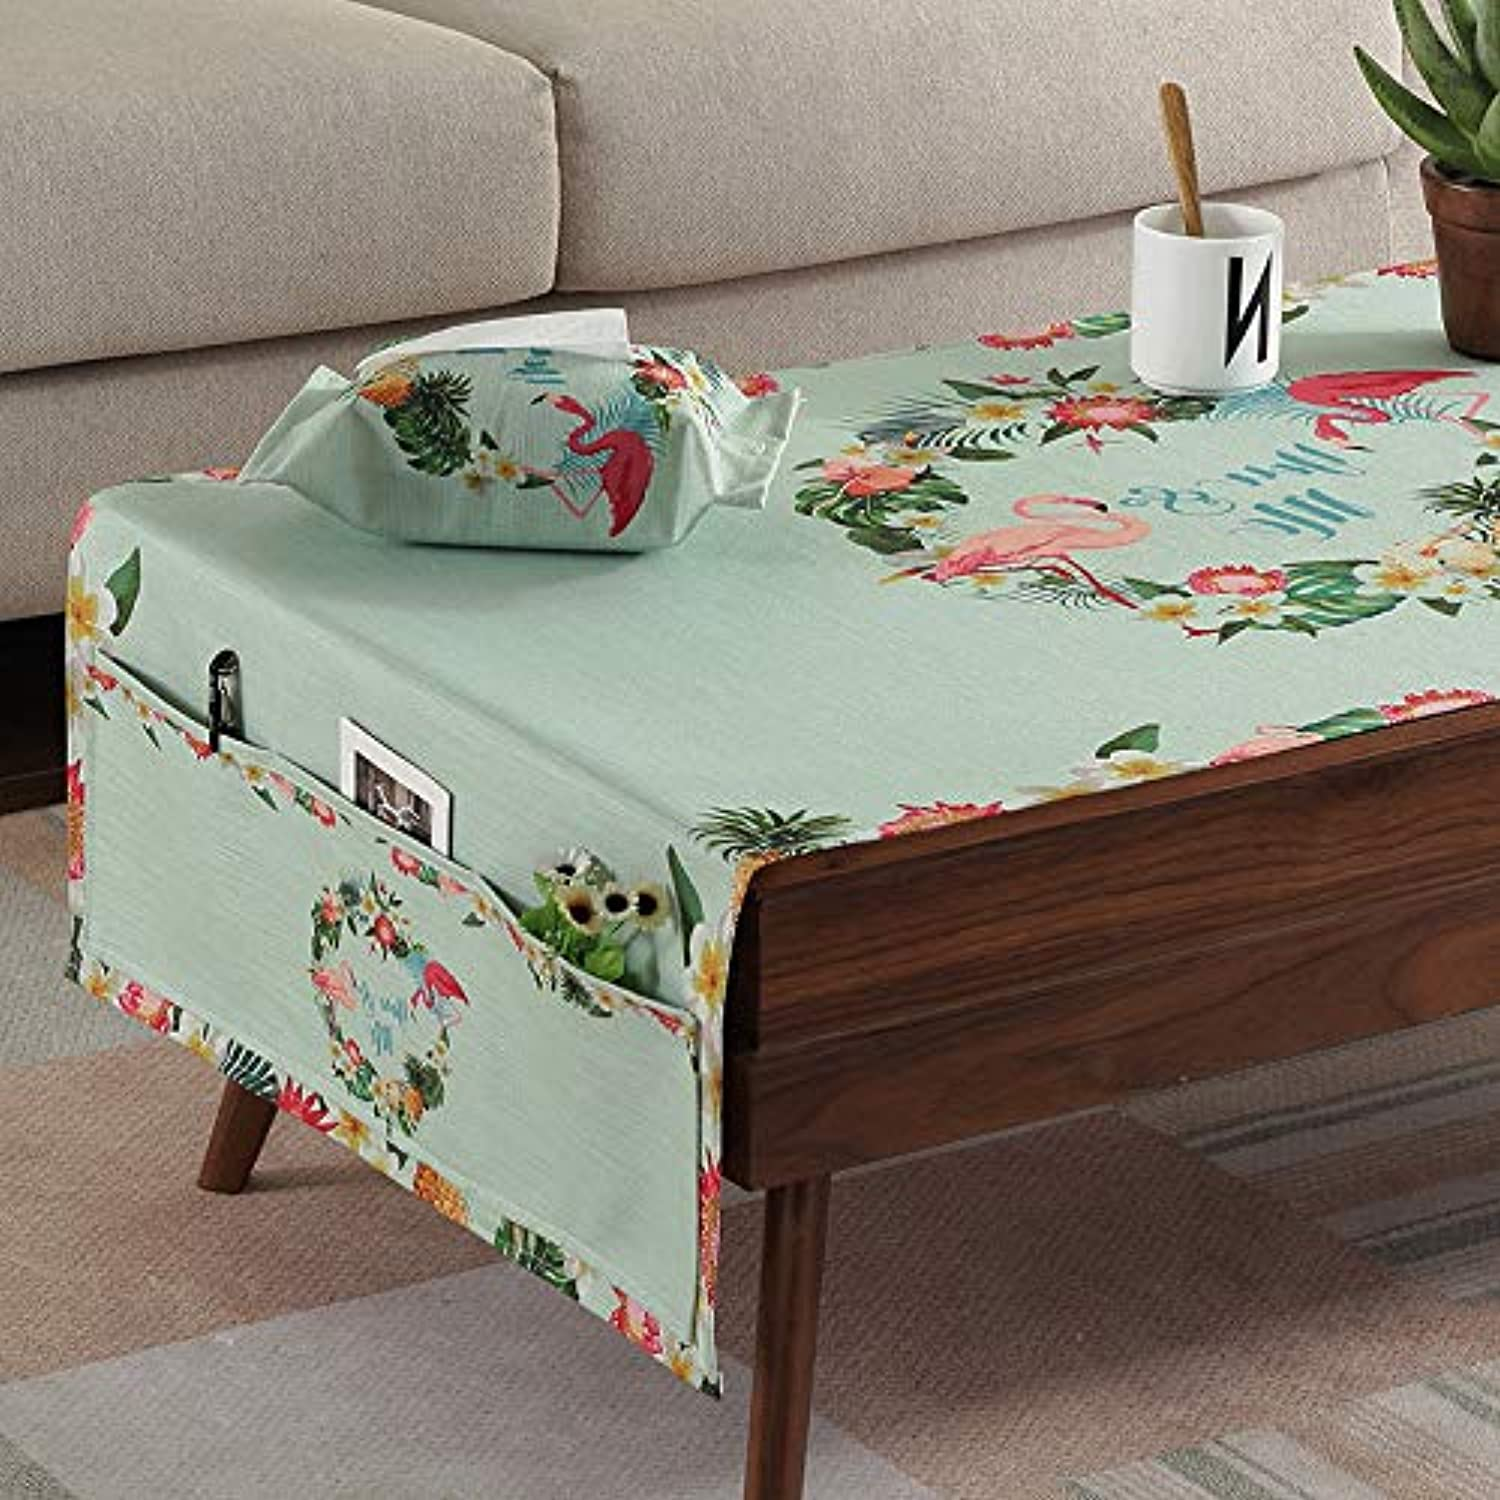 Creek Ywh Nordic fabric coffee table tablecloth art small fresh waterproof antiscalding oilfree disposable, with storage bag  flamingo tropical, 60150cm